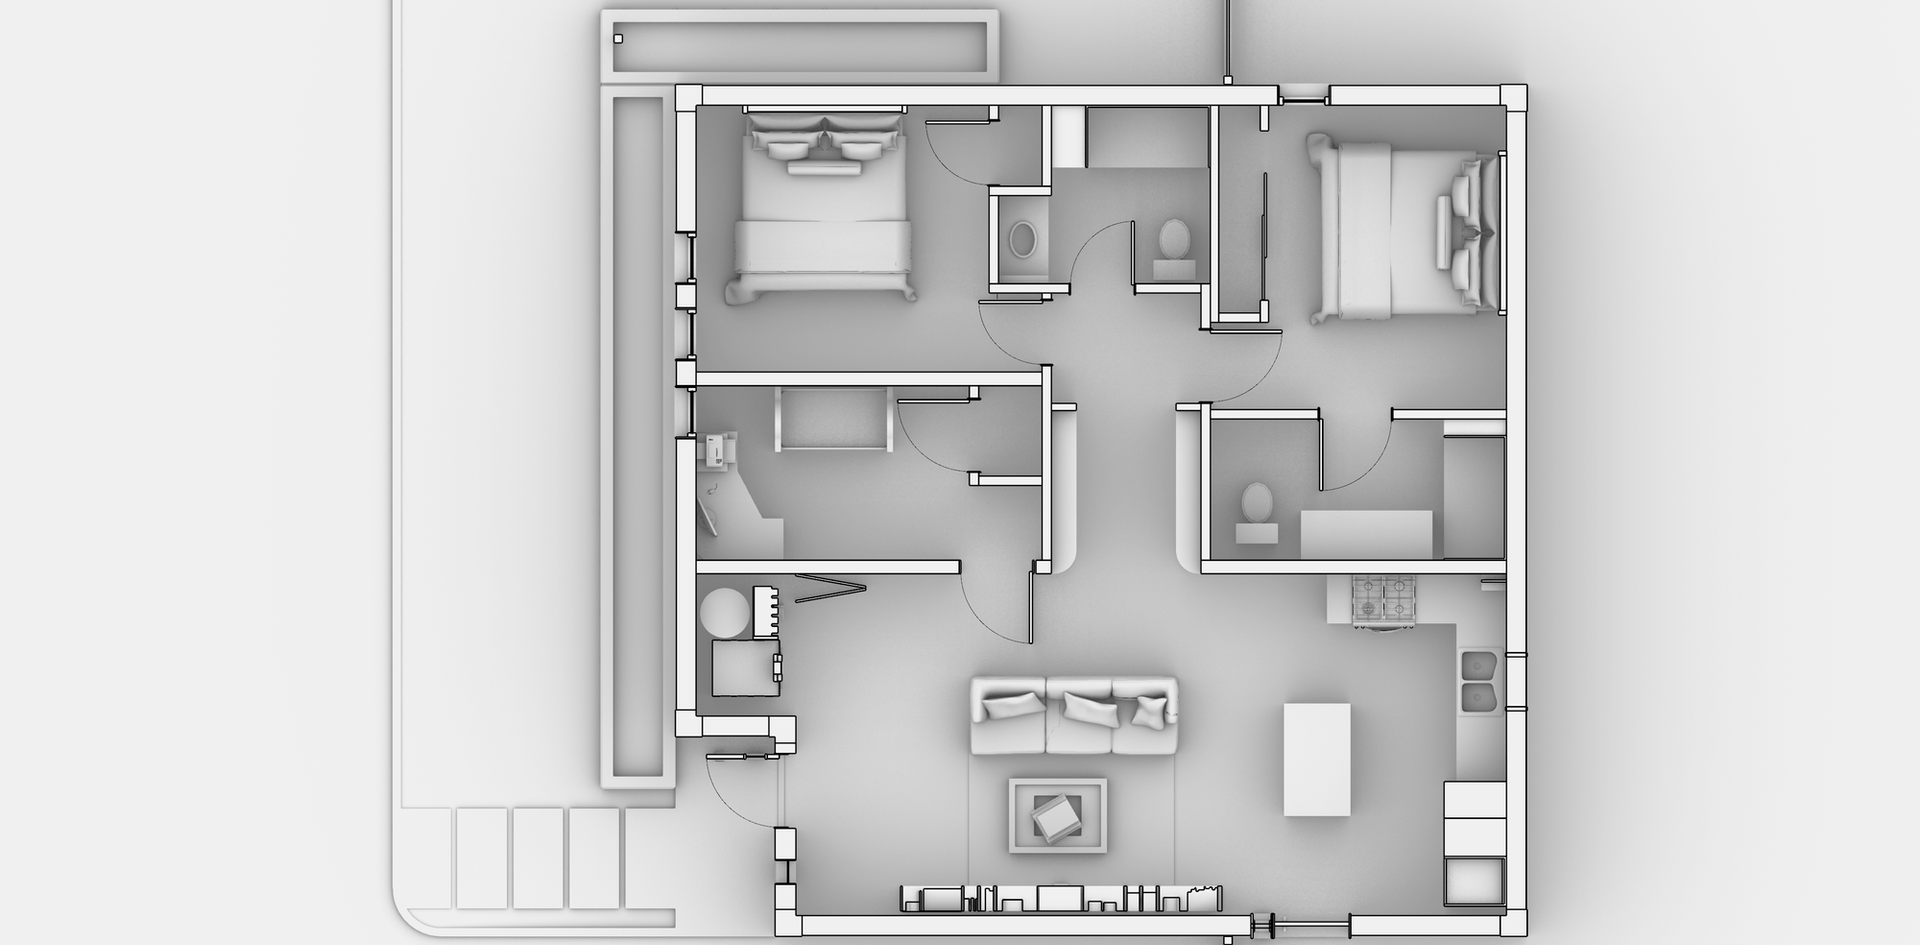 Medium Floorplan.png